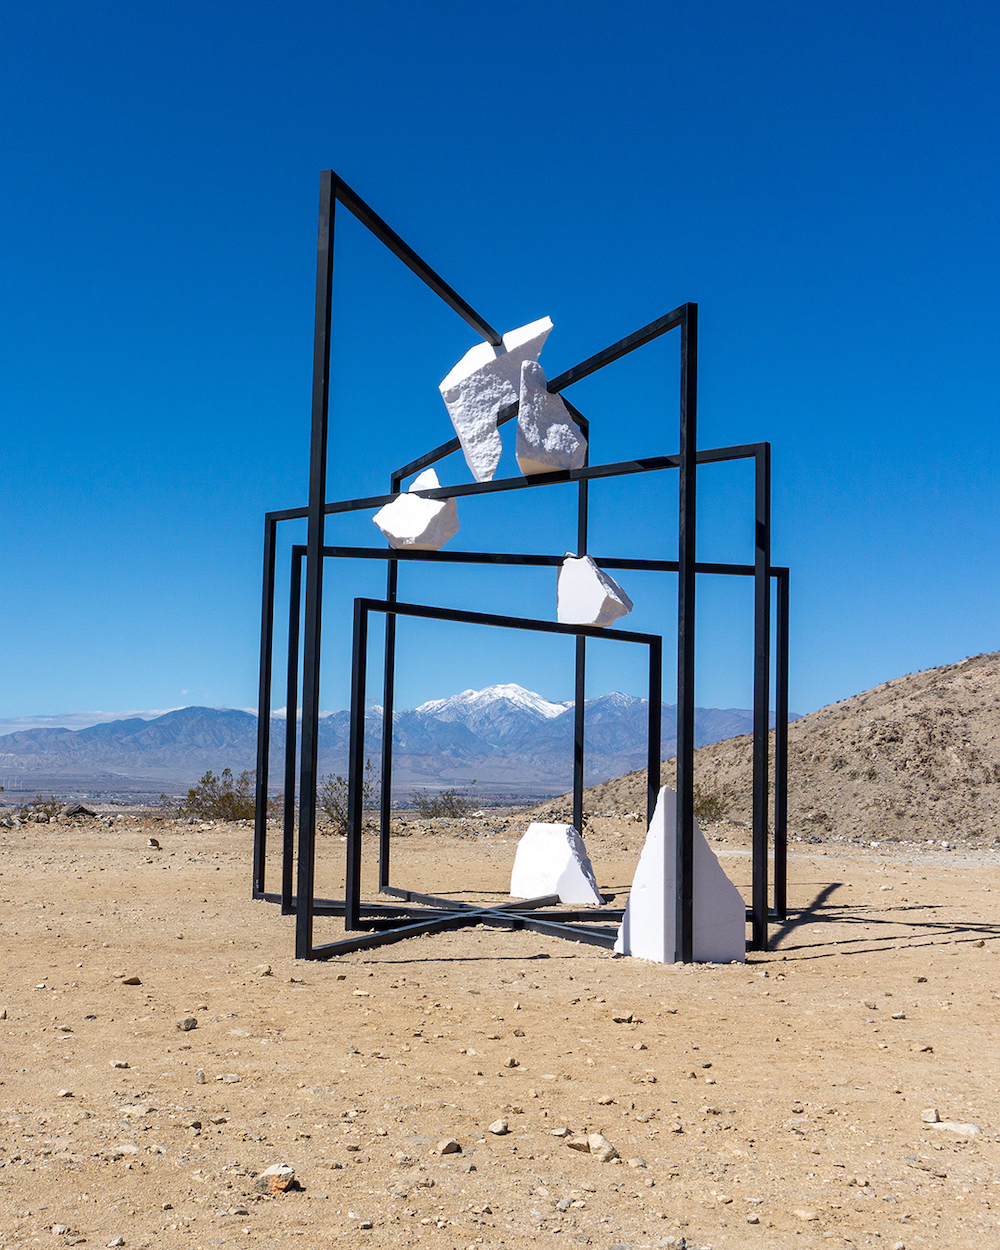 desert x 2021 ParaPivot sempiternal clouds by Alicja Kwade art installation palm desert california